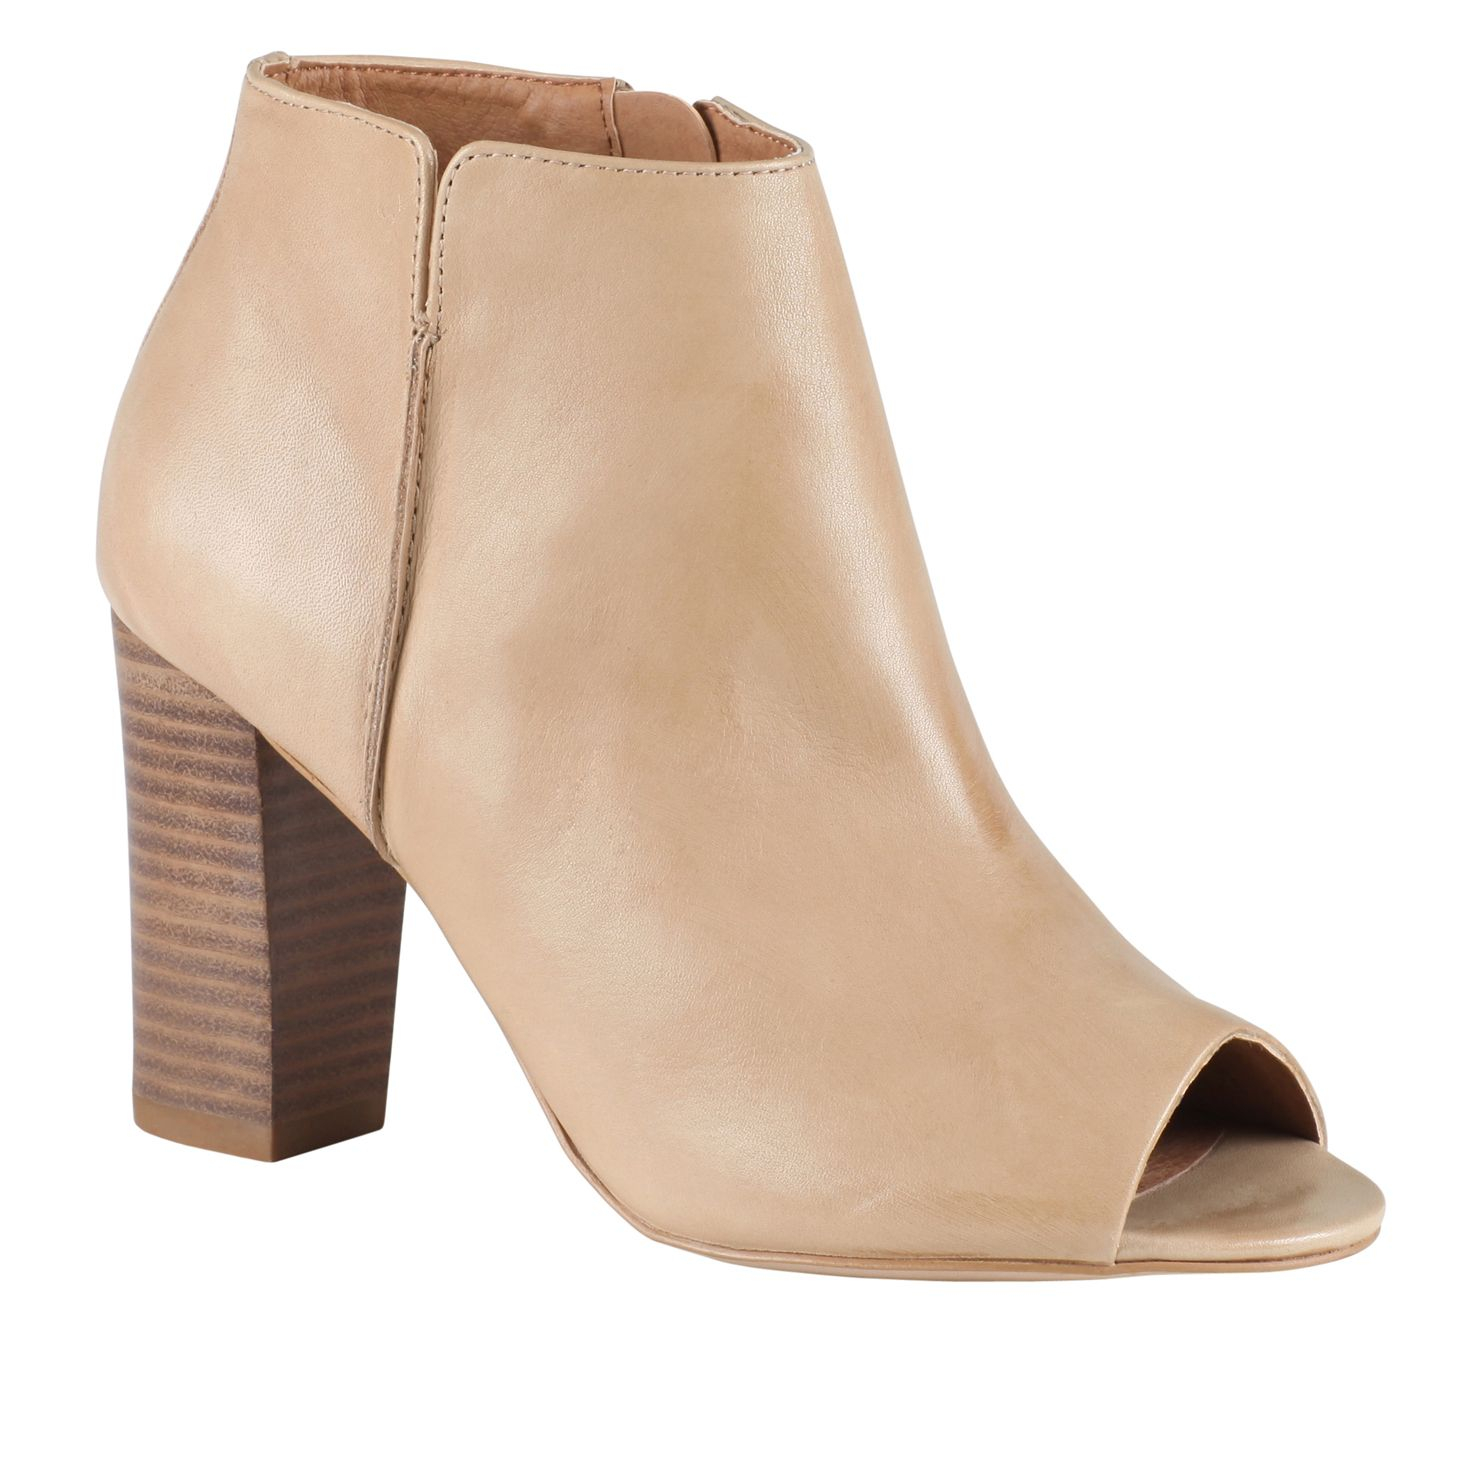 Find great deals on eBay for peep toe ankle boots. Shop with confidence.